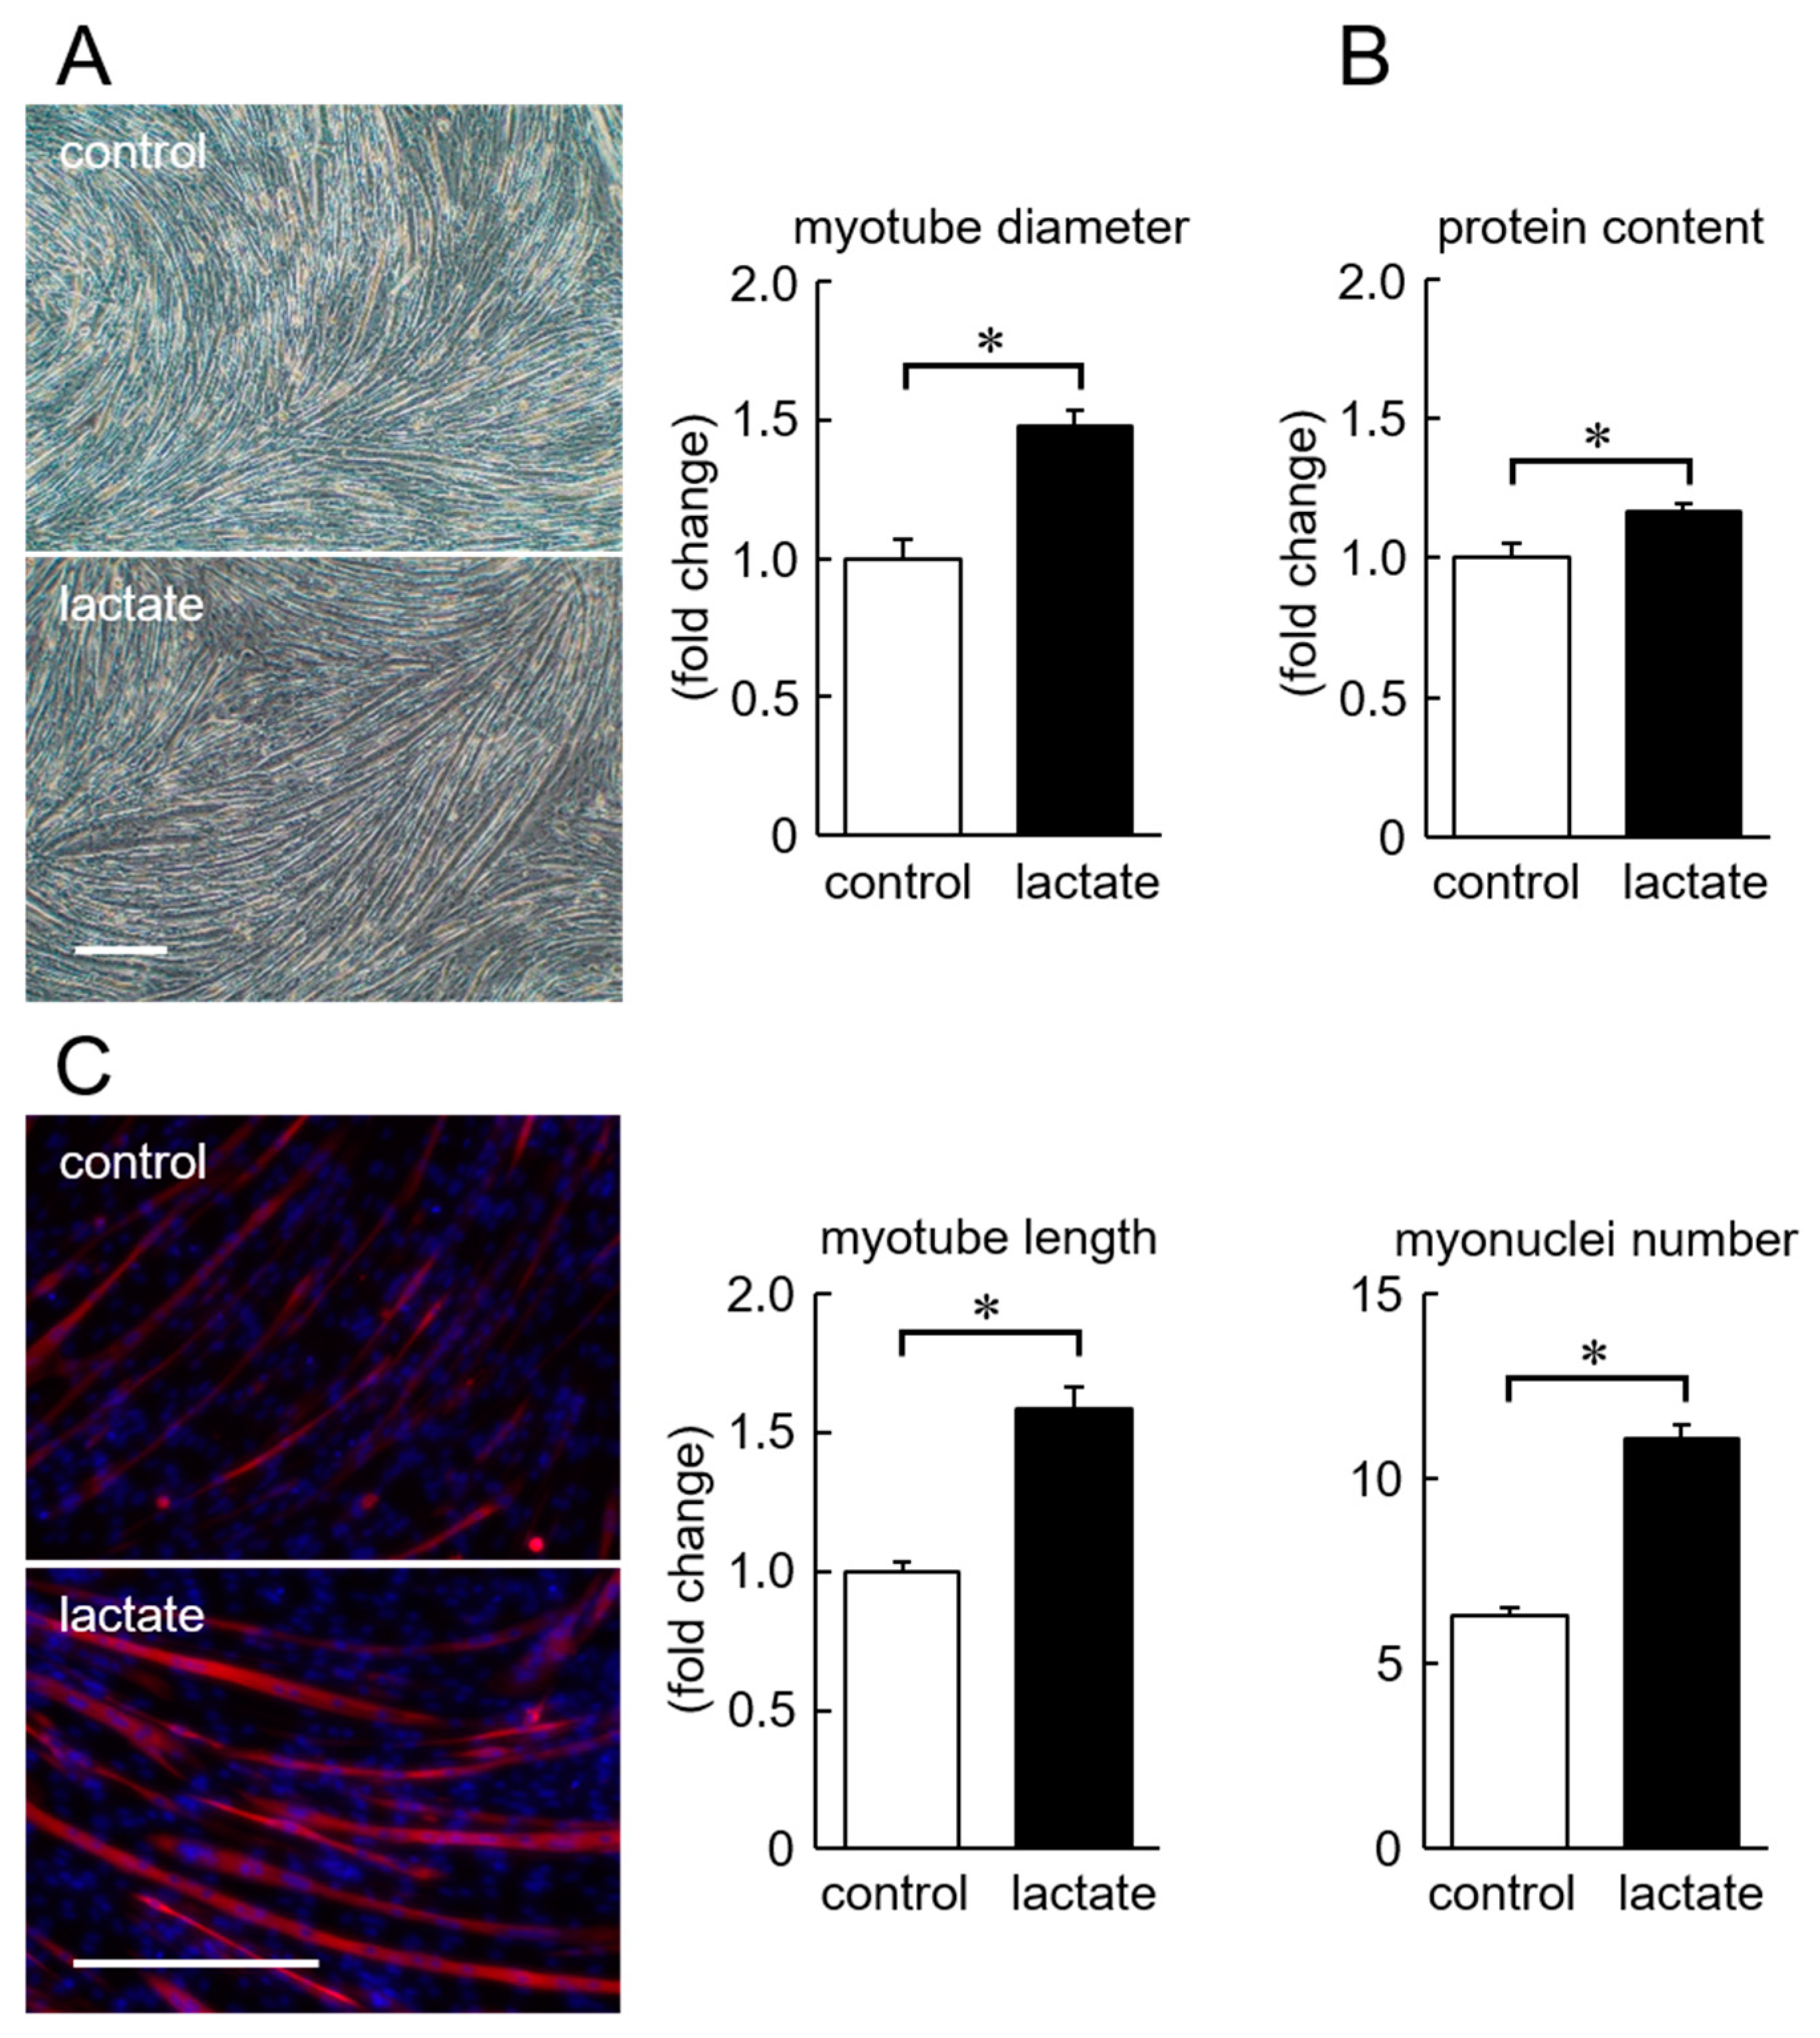 Nutrients | Free Full-Text | Lactate Stimulates a Potential